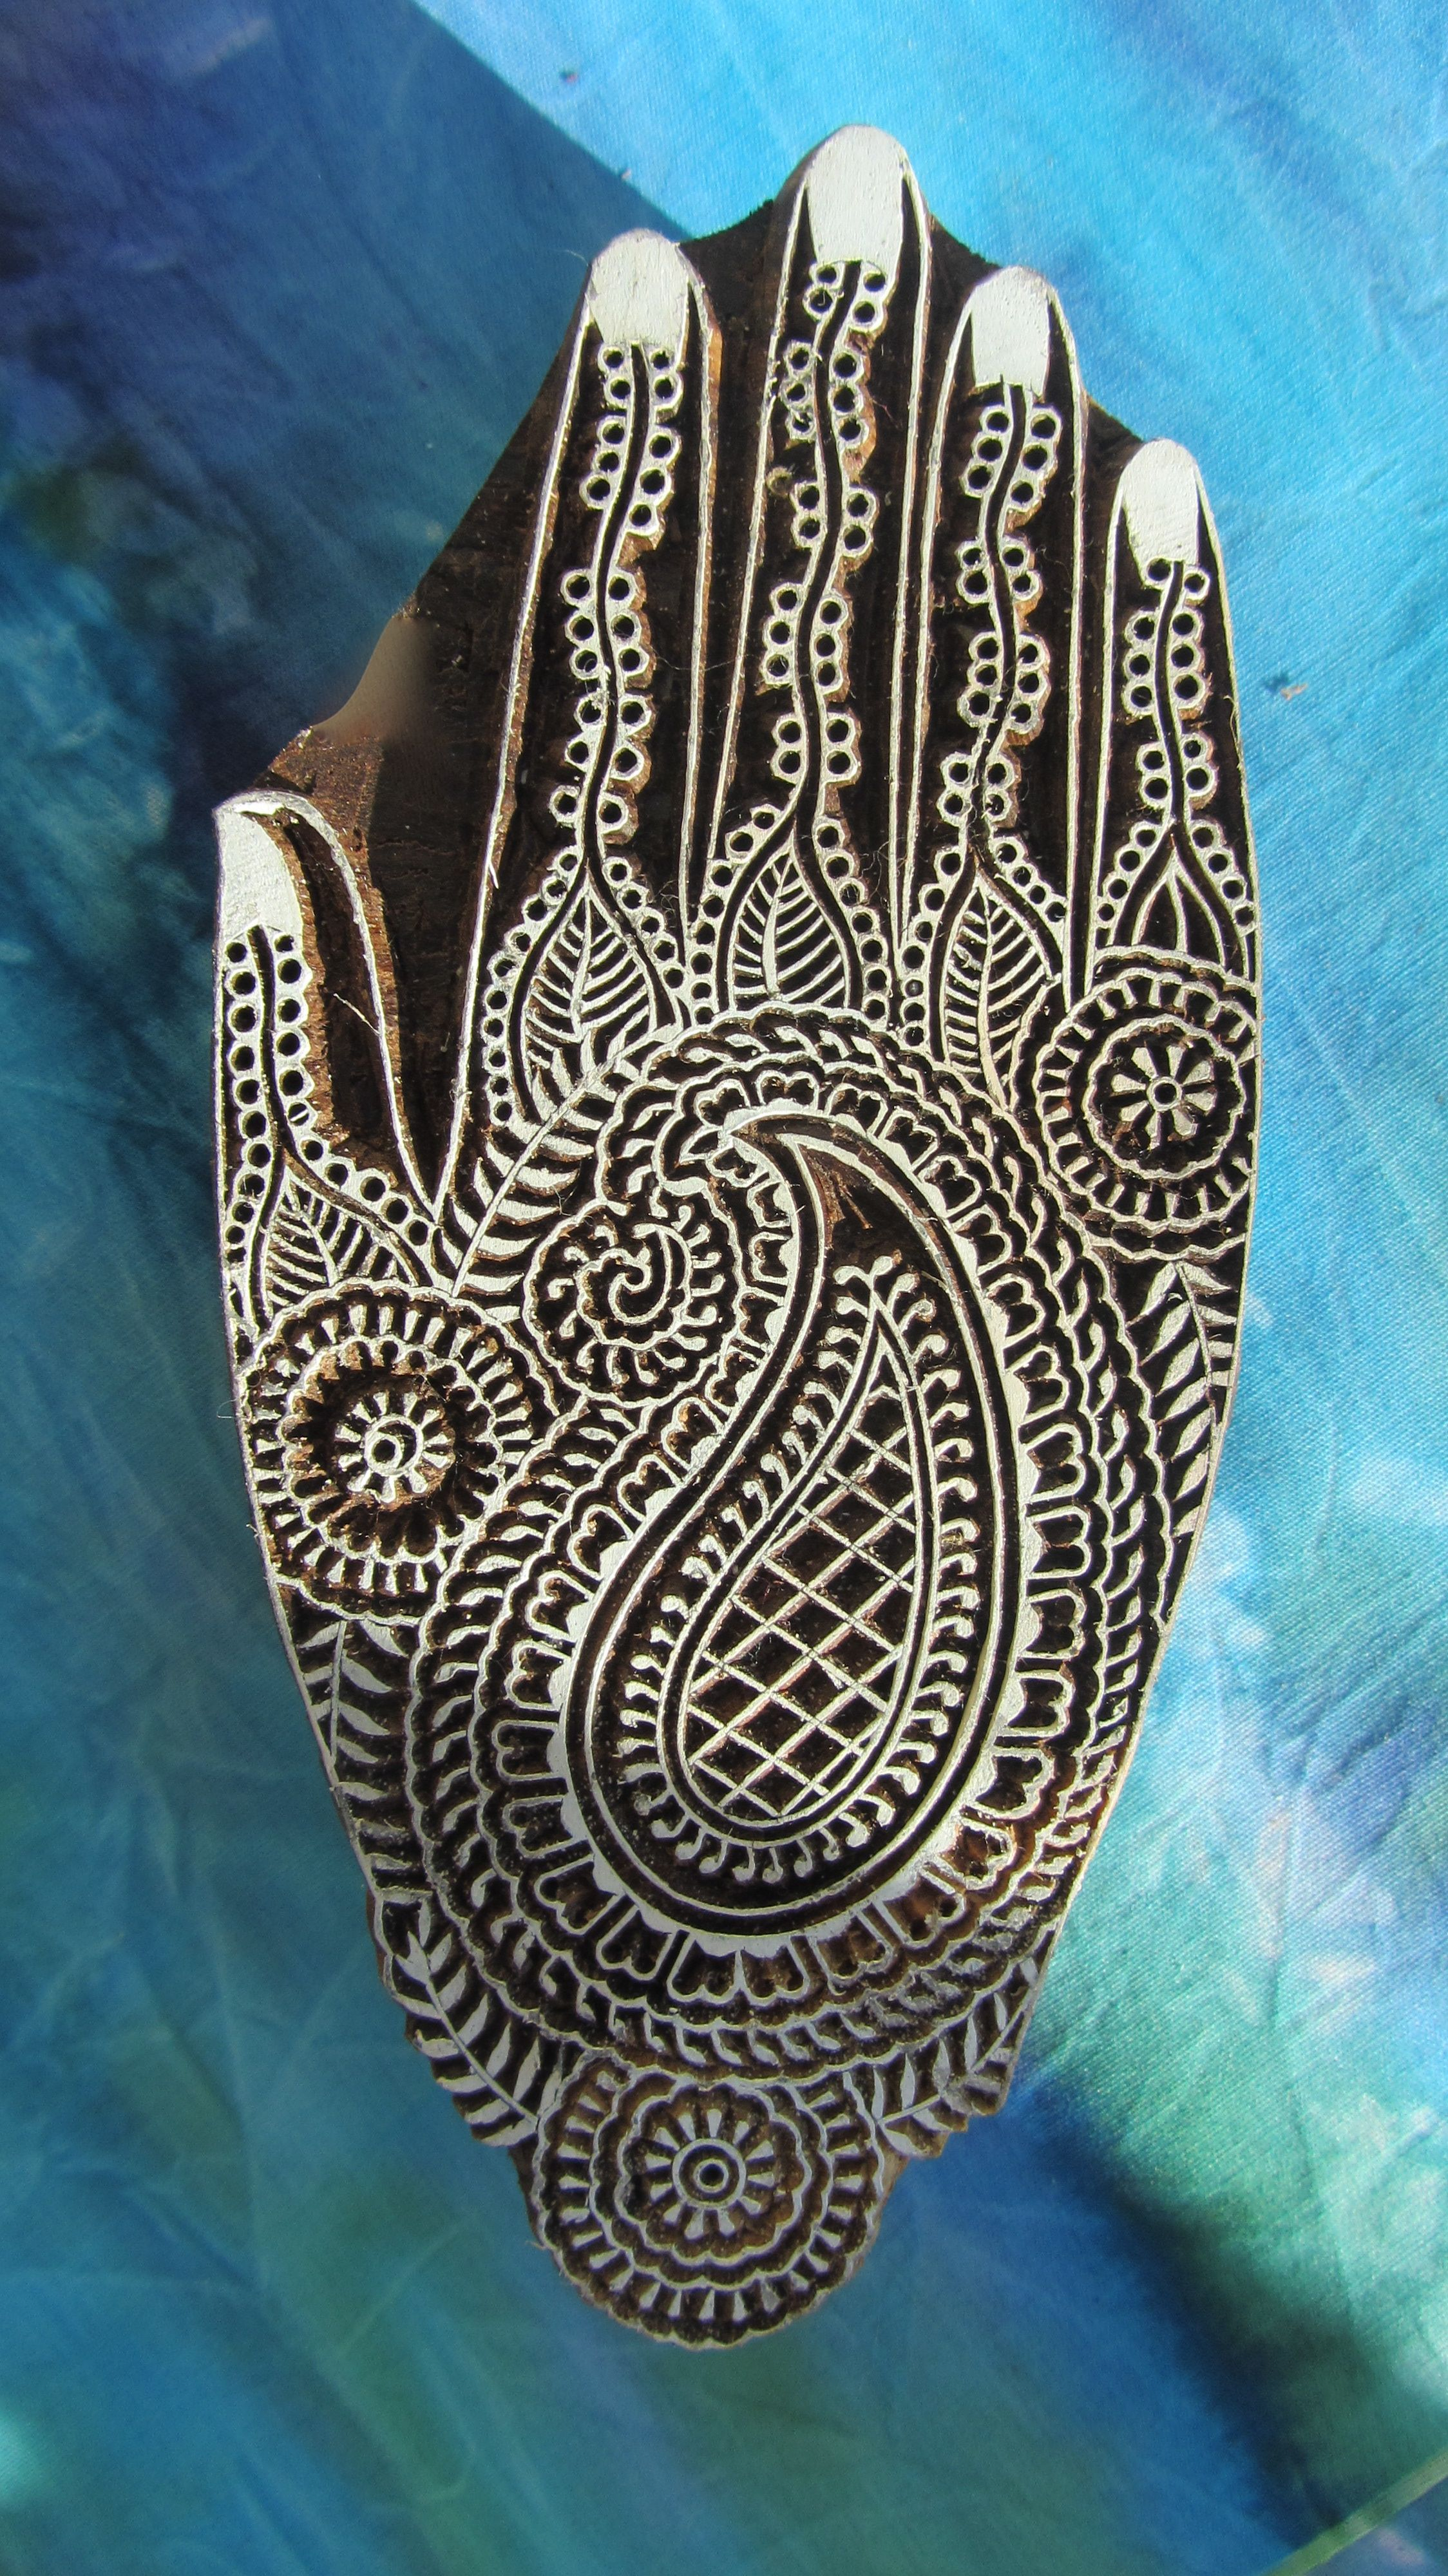 Google Image Result for http://www.theindianblockcompany.com/sites/default/files/MD04_mendhi_paisley_wooden_printing%2520block.jpg